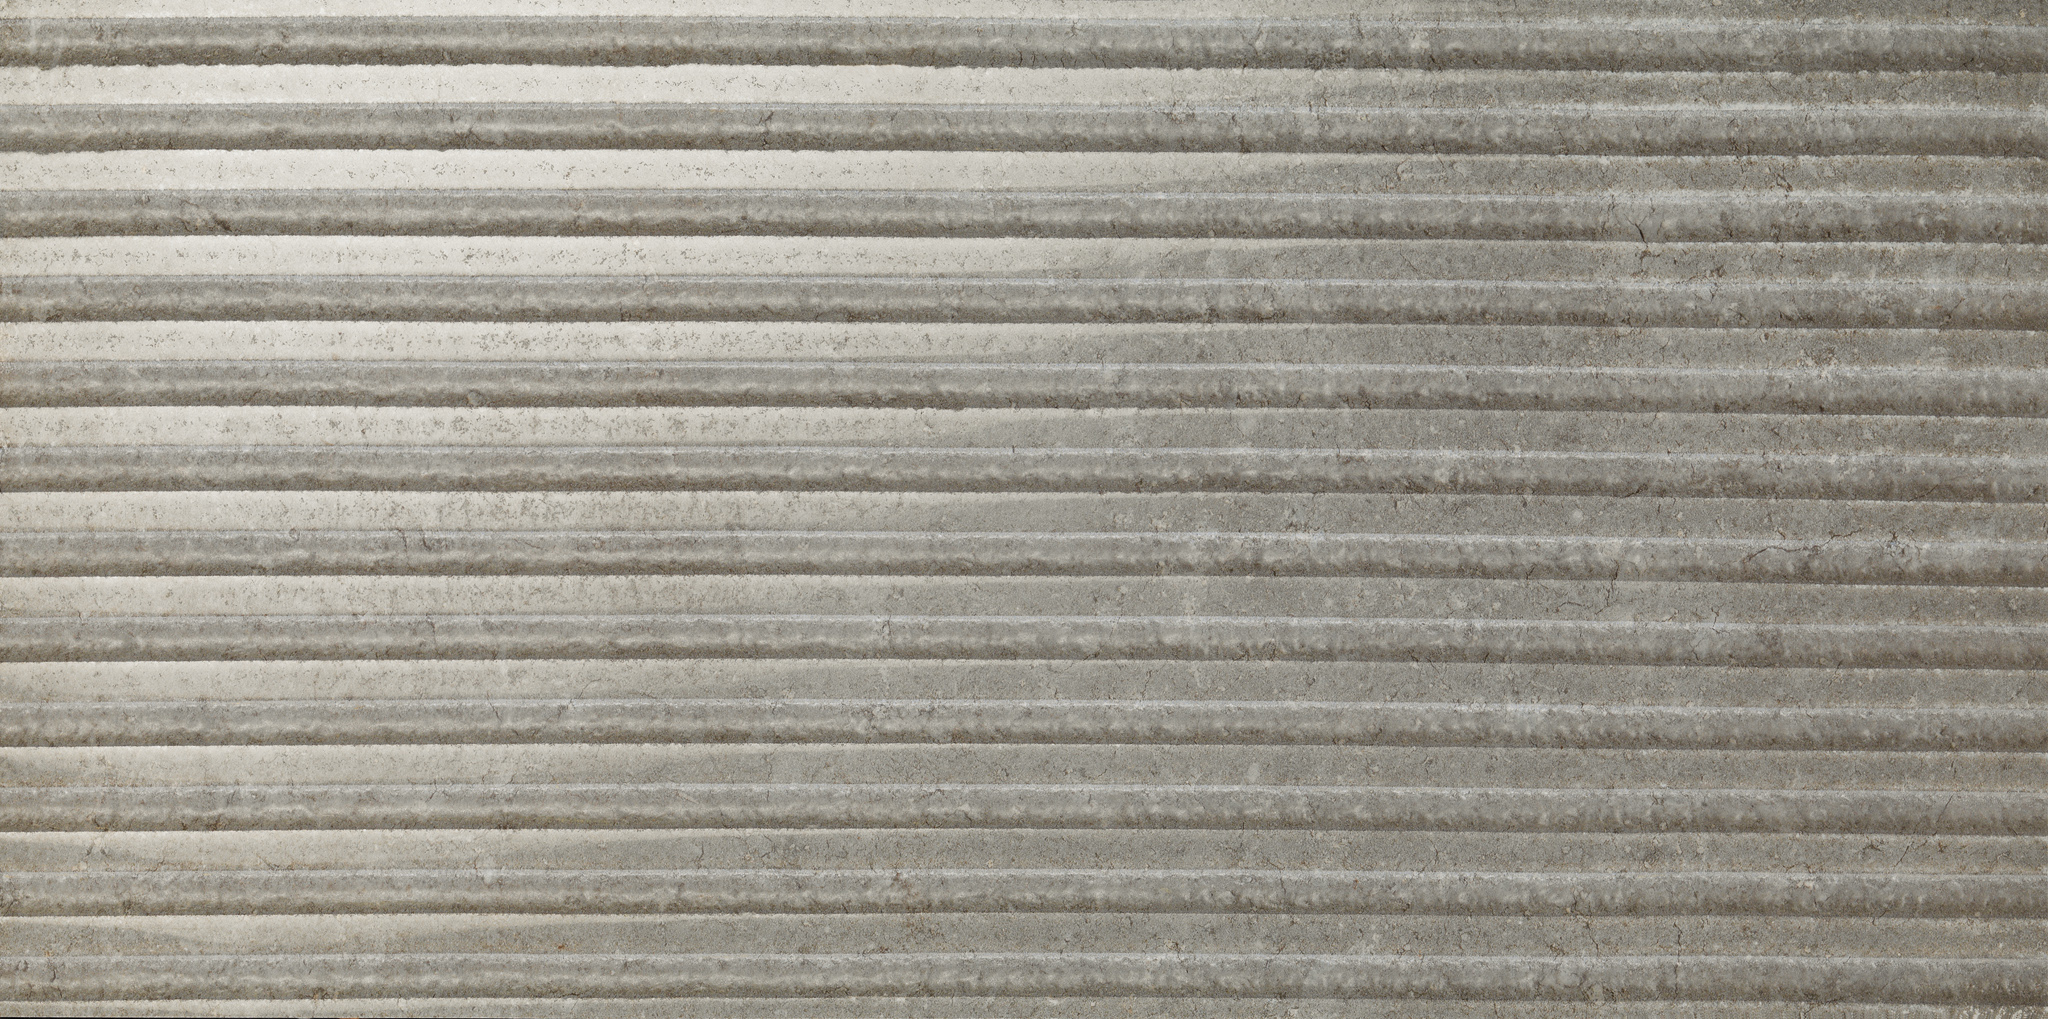 Muretto Cold Porcelain Tile From Our Completo Tile Collection